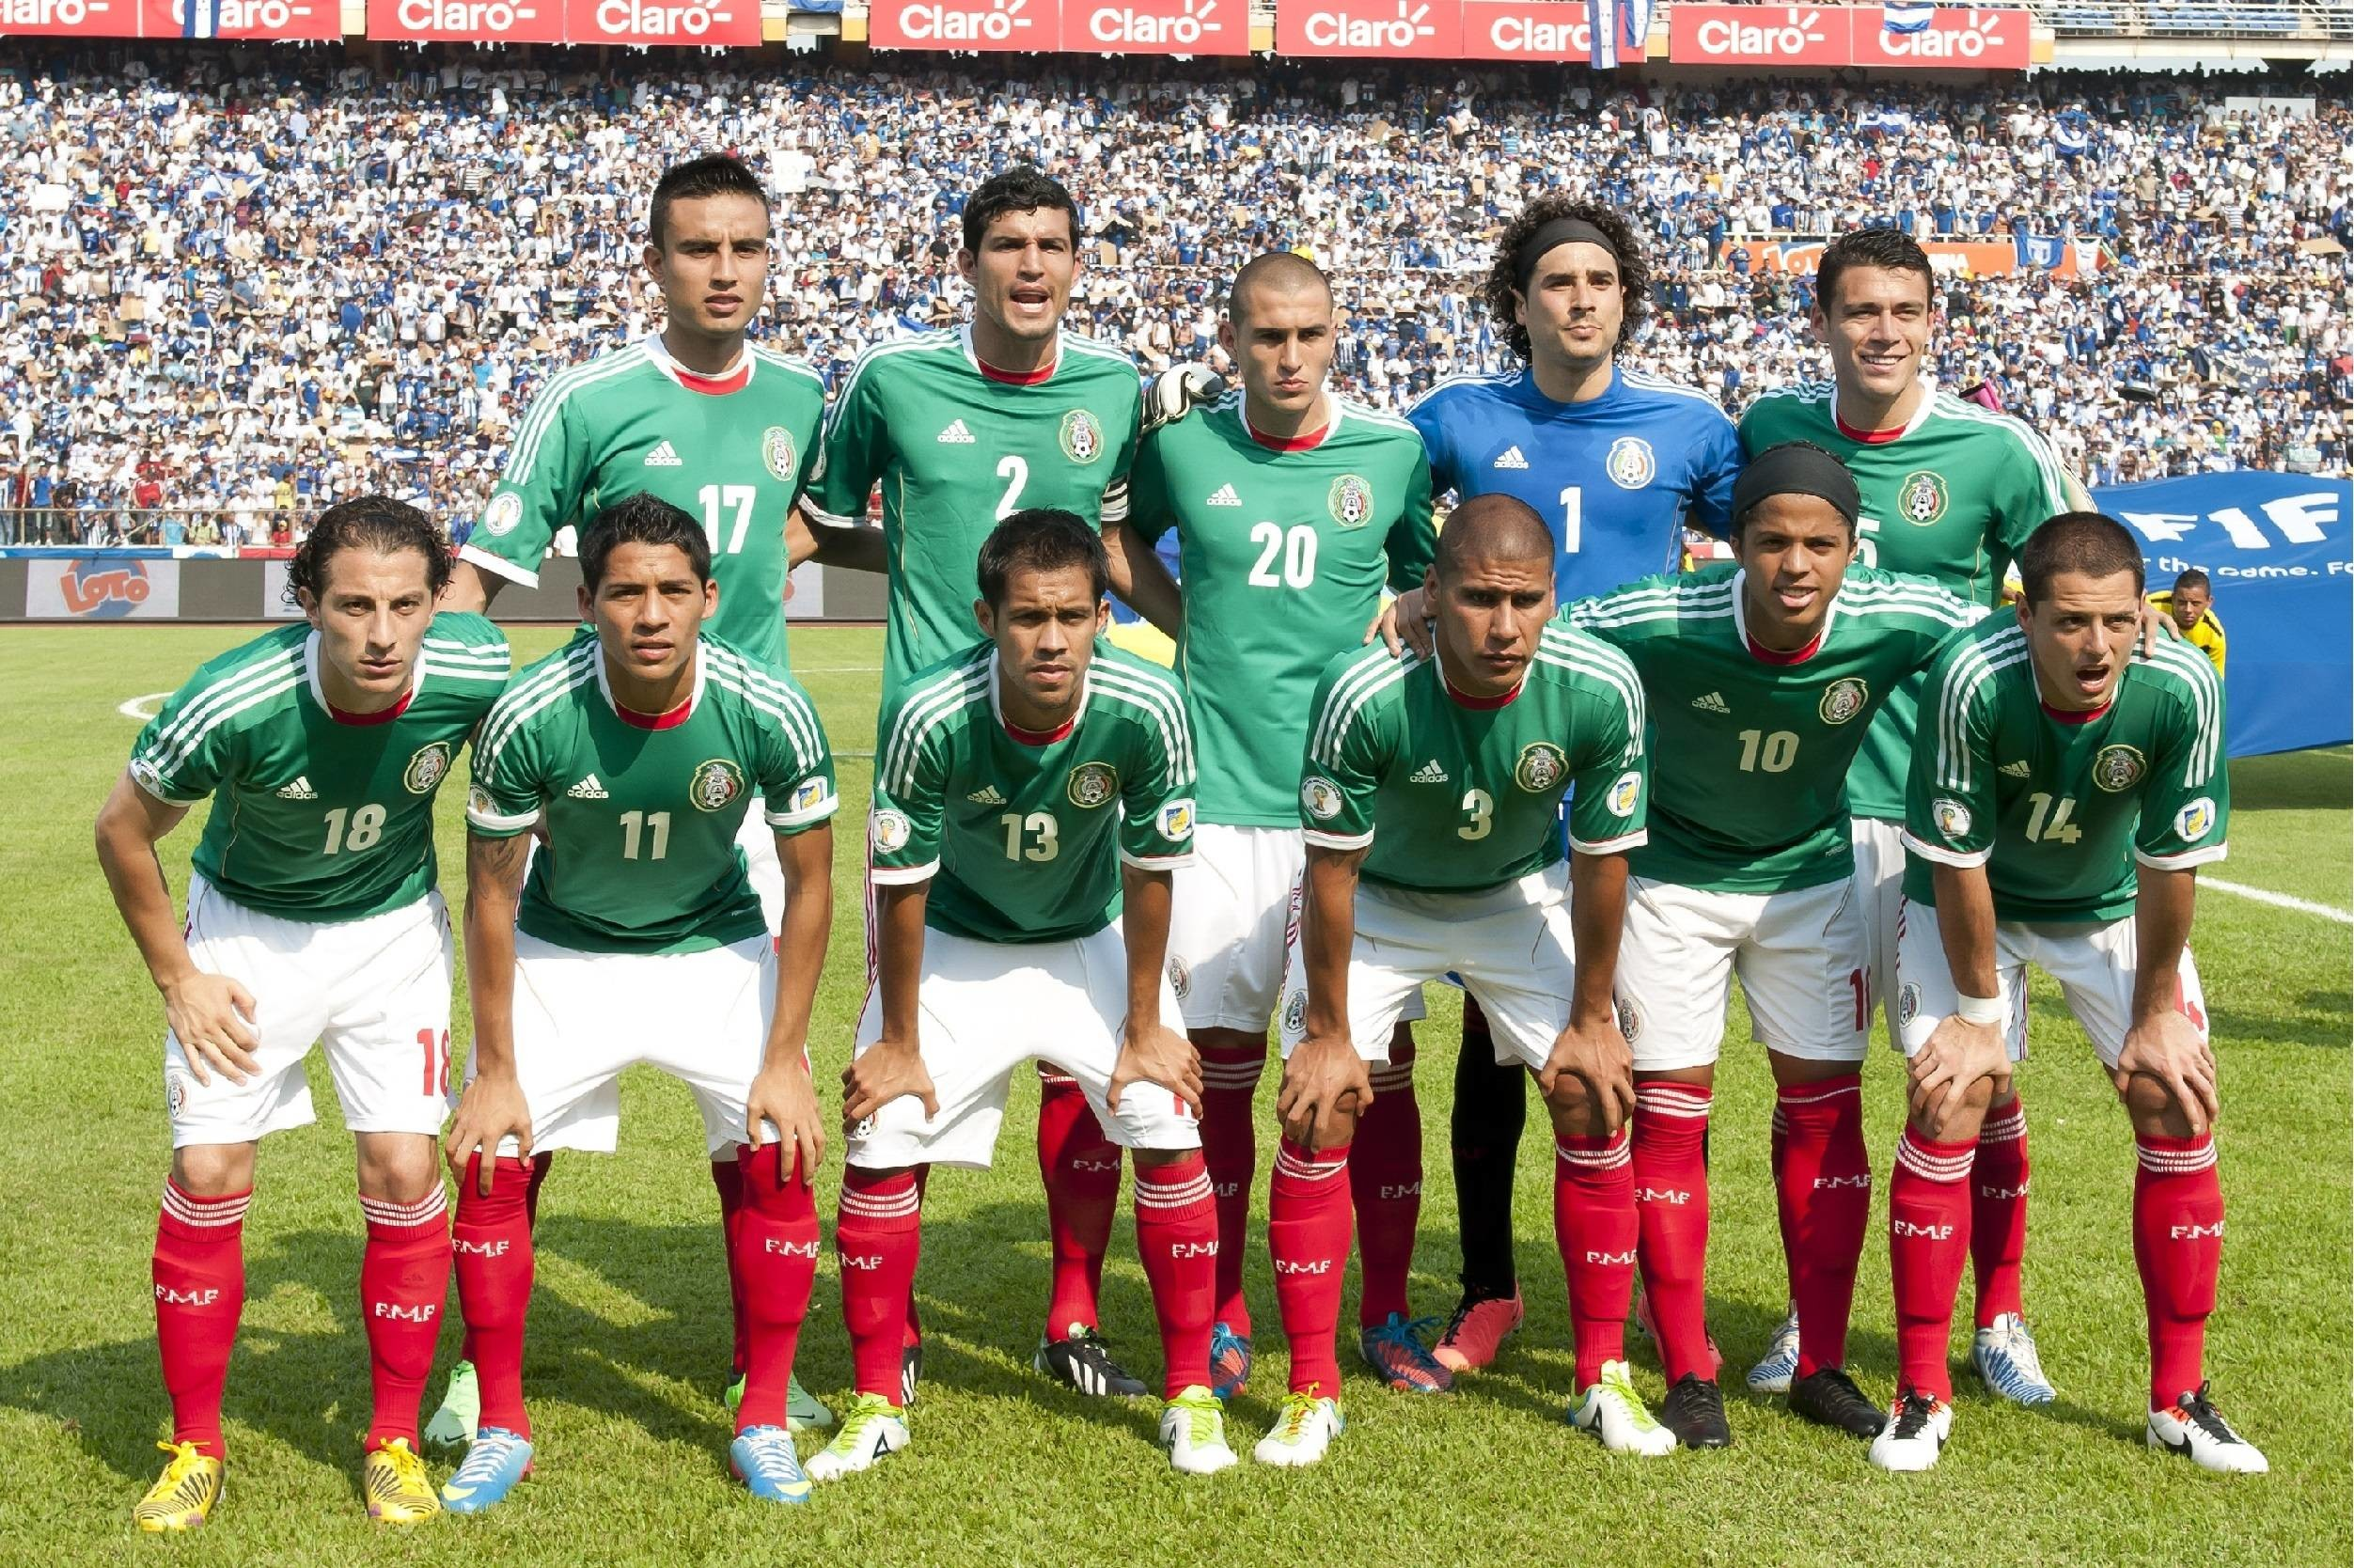 2504x1668 Mexico Team Wallpapers 150825 Images | soccerwallpics.com